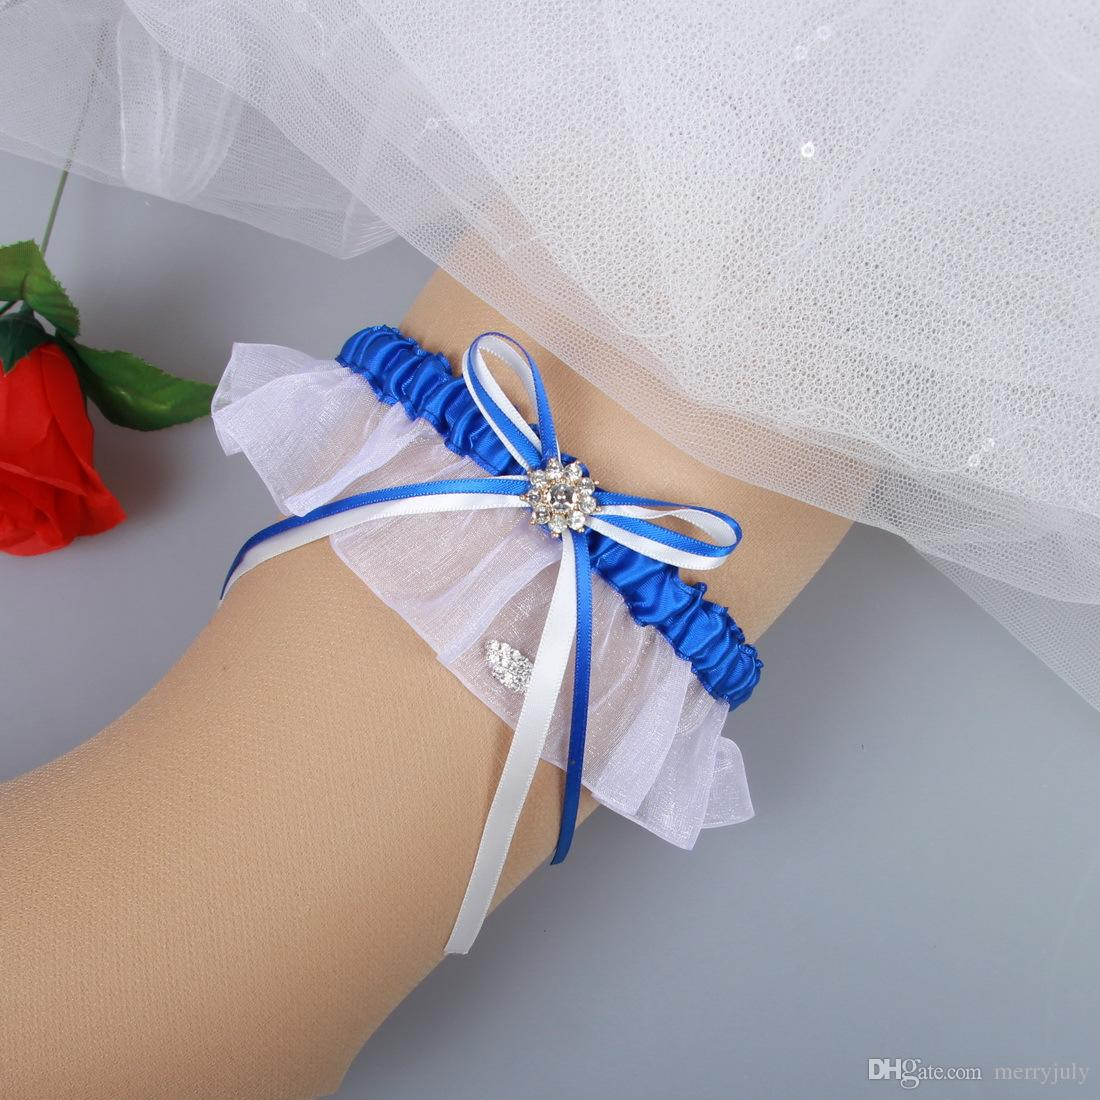 Royal Blue Prom Garter Something Blue Wedding Garter Bridal Garter with Rhinestones Bridal Leg Garters Prom Garters